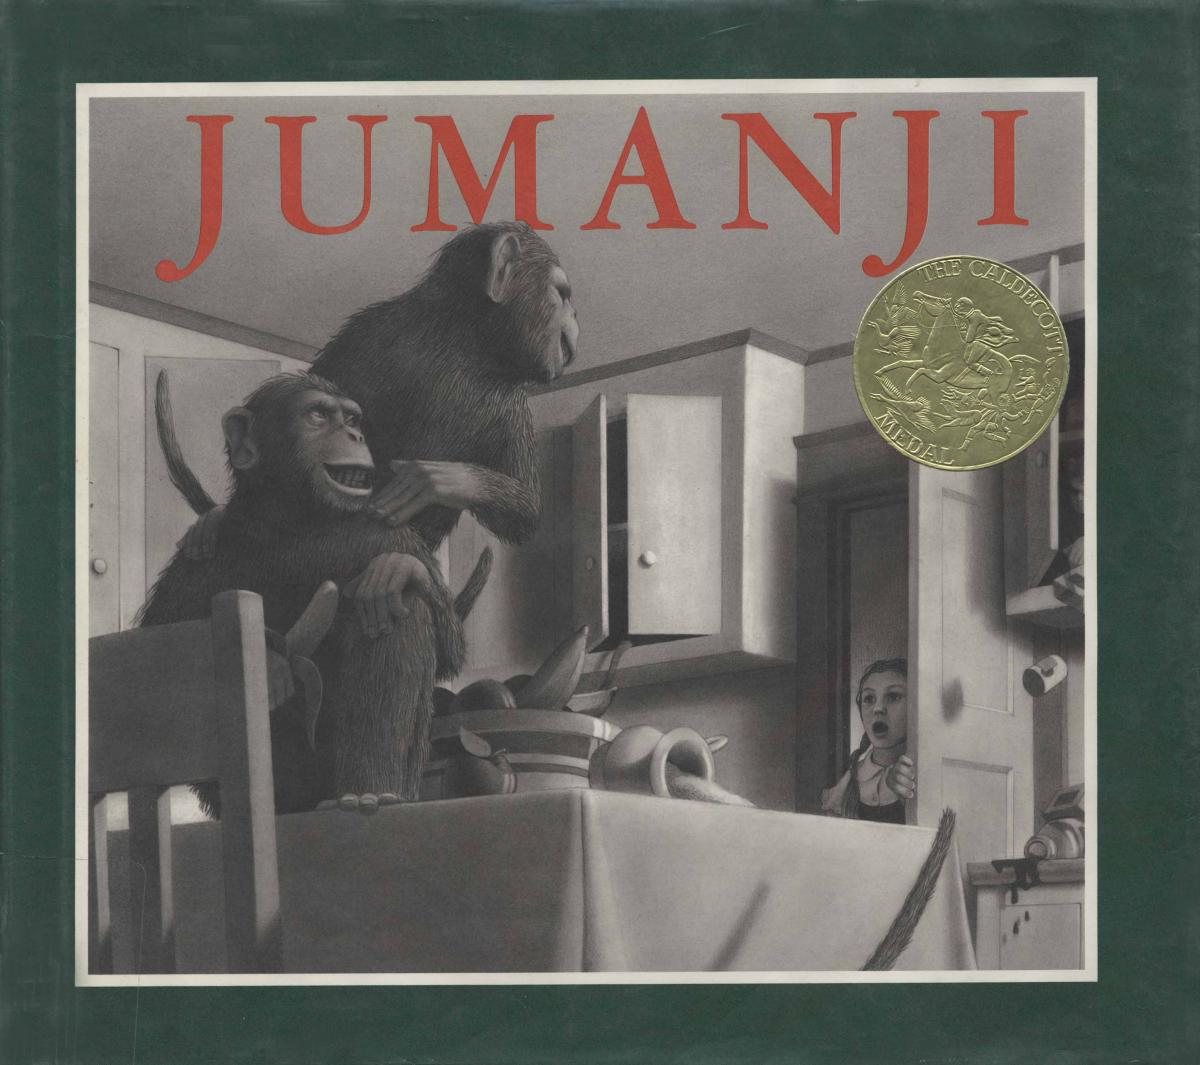 Jumanji - book cover image